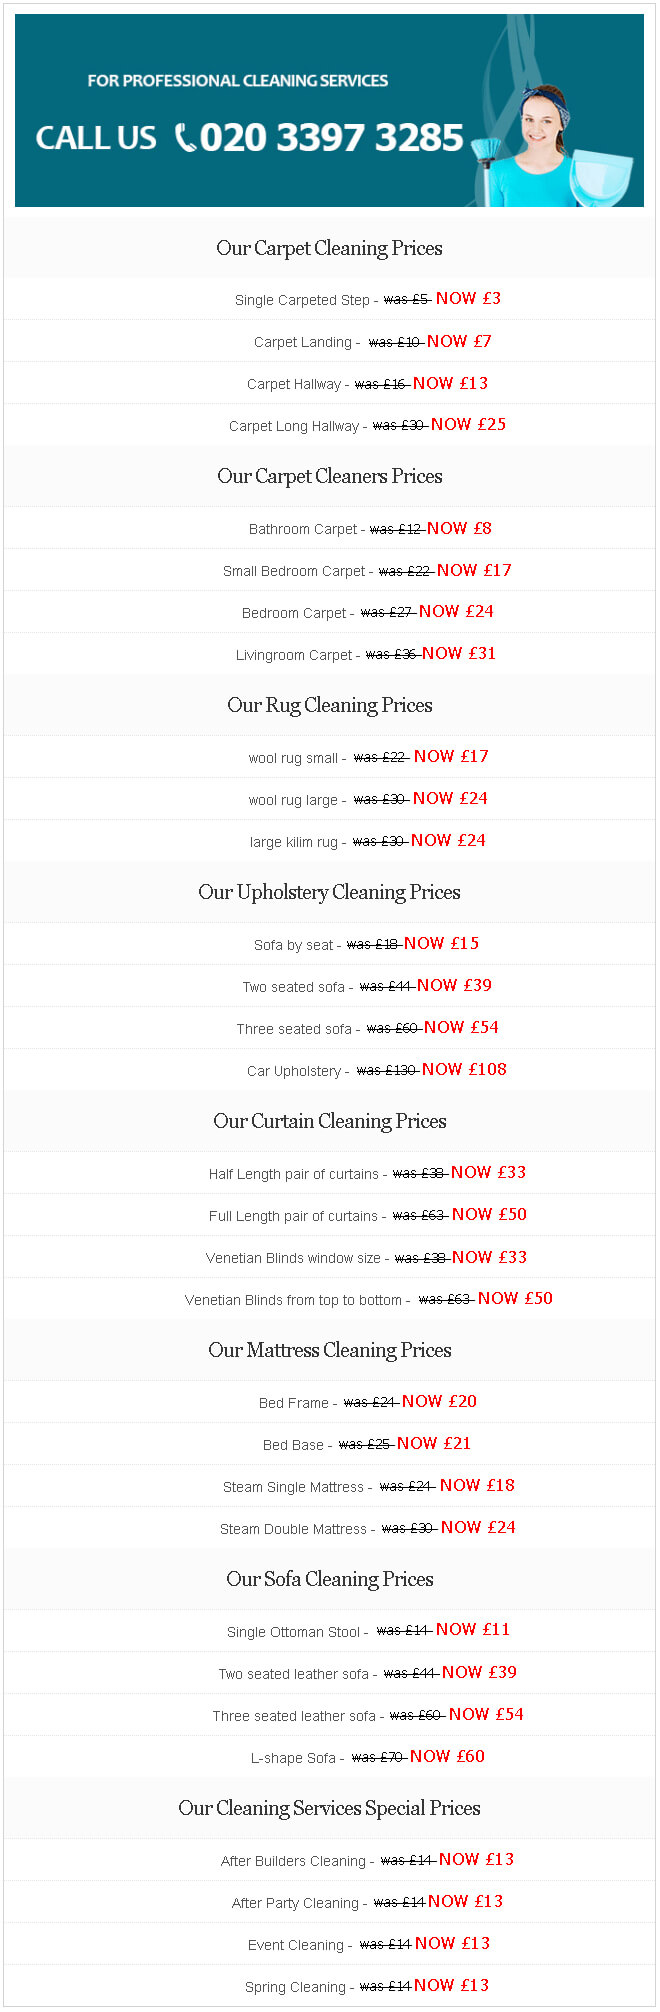 Check Out our Budget Friendly Prices Now